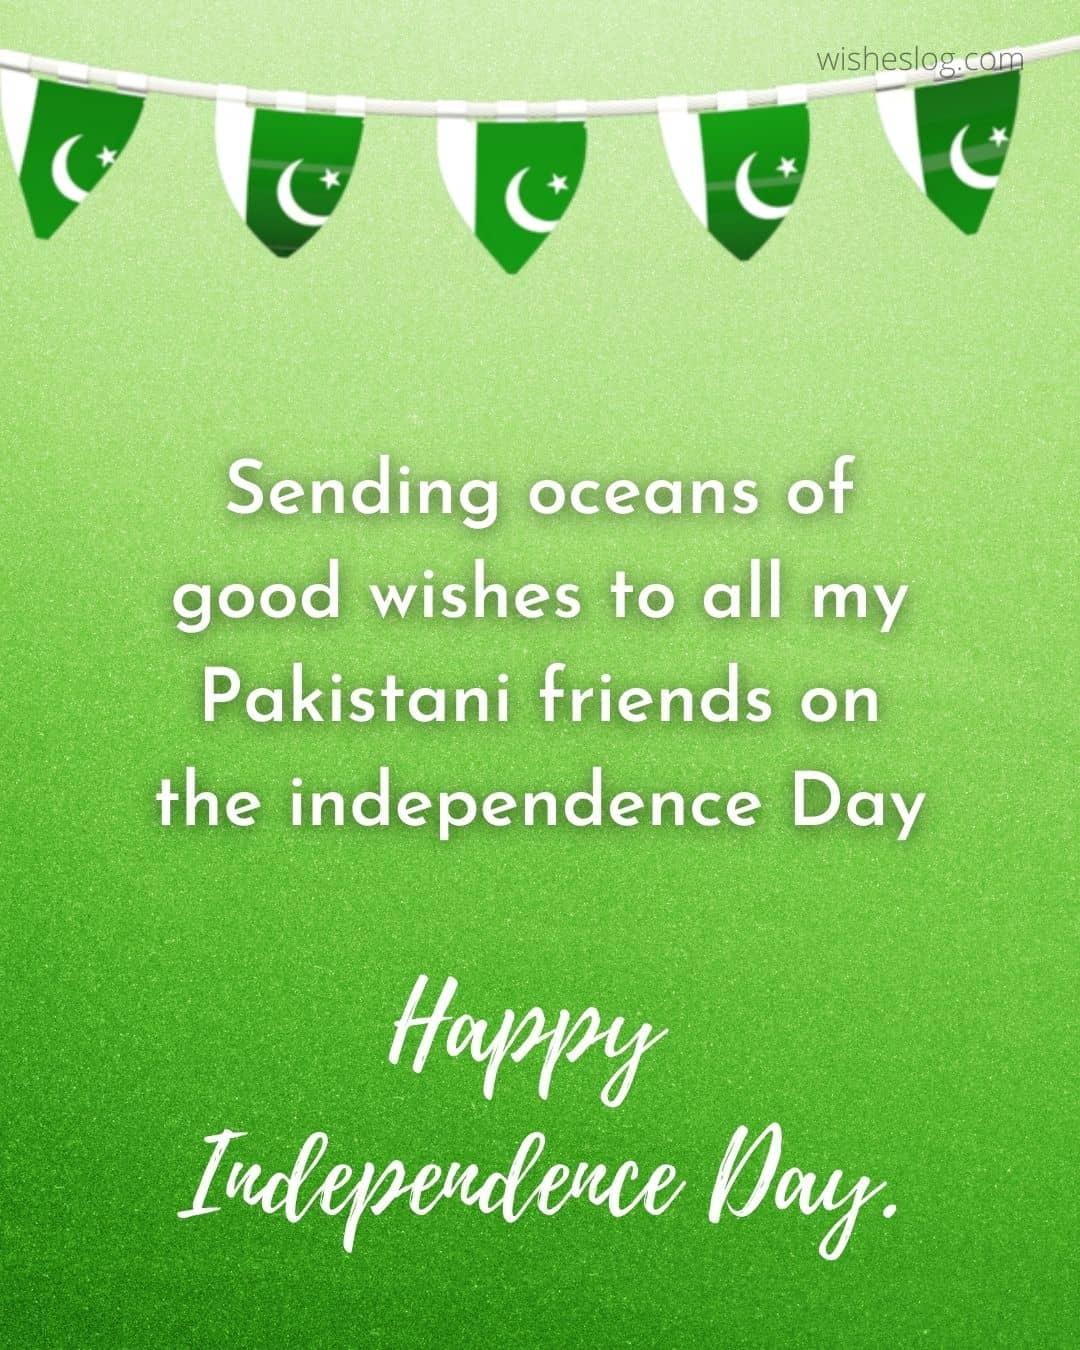 pakistan-independence-day-11